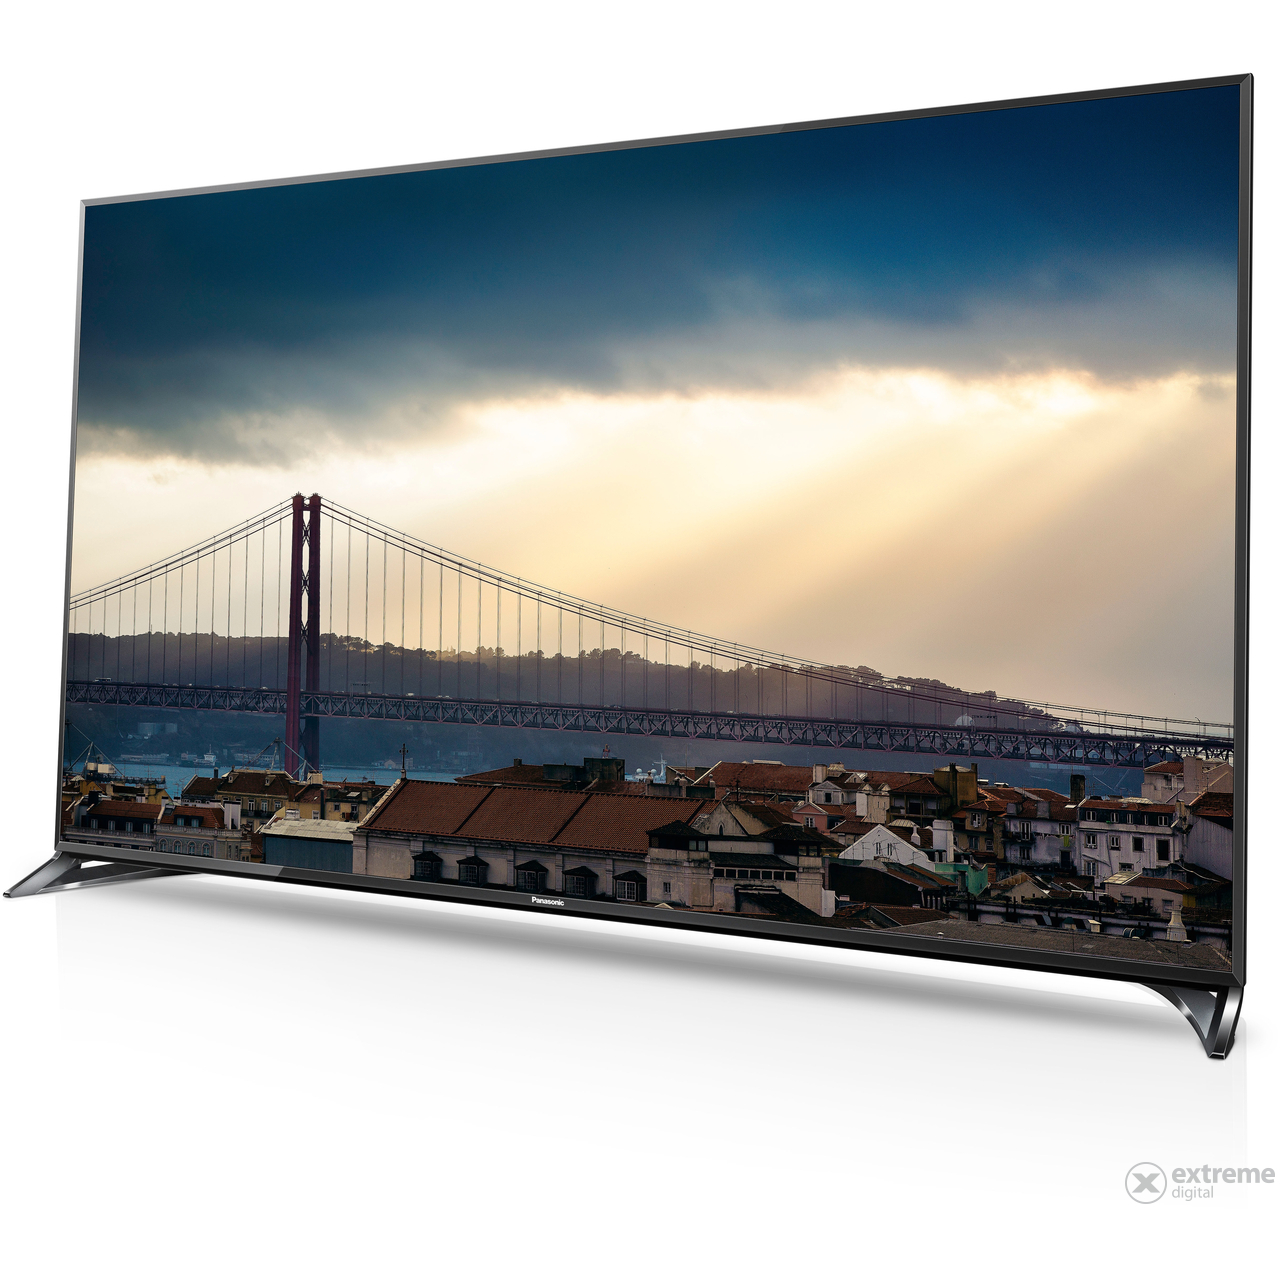 panasonic-tx-40cx800e-uhd-3d-smart-led-televizio_3ba53f49.jpg